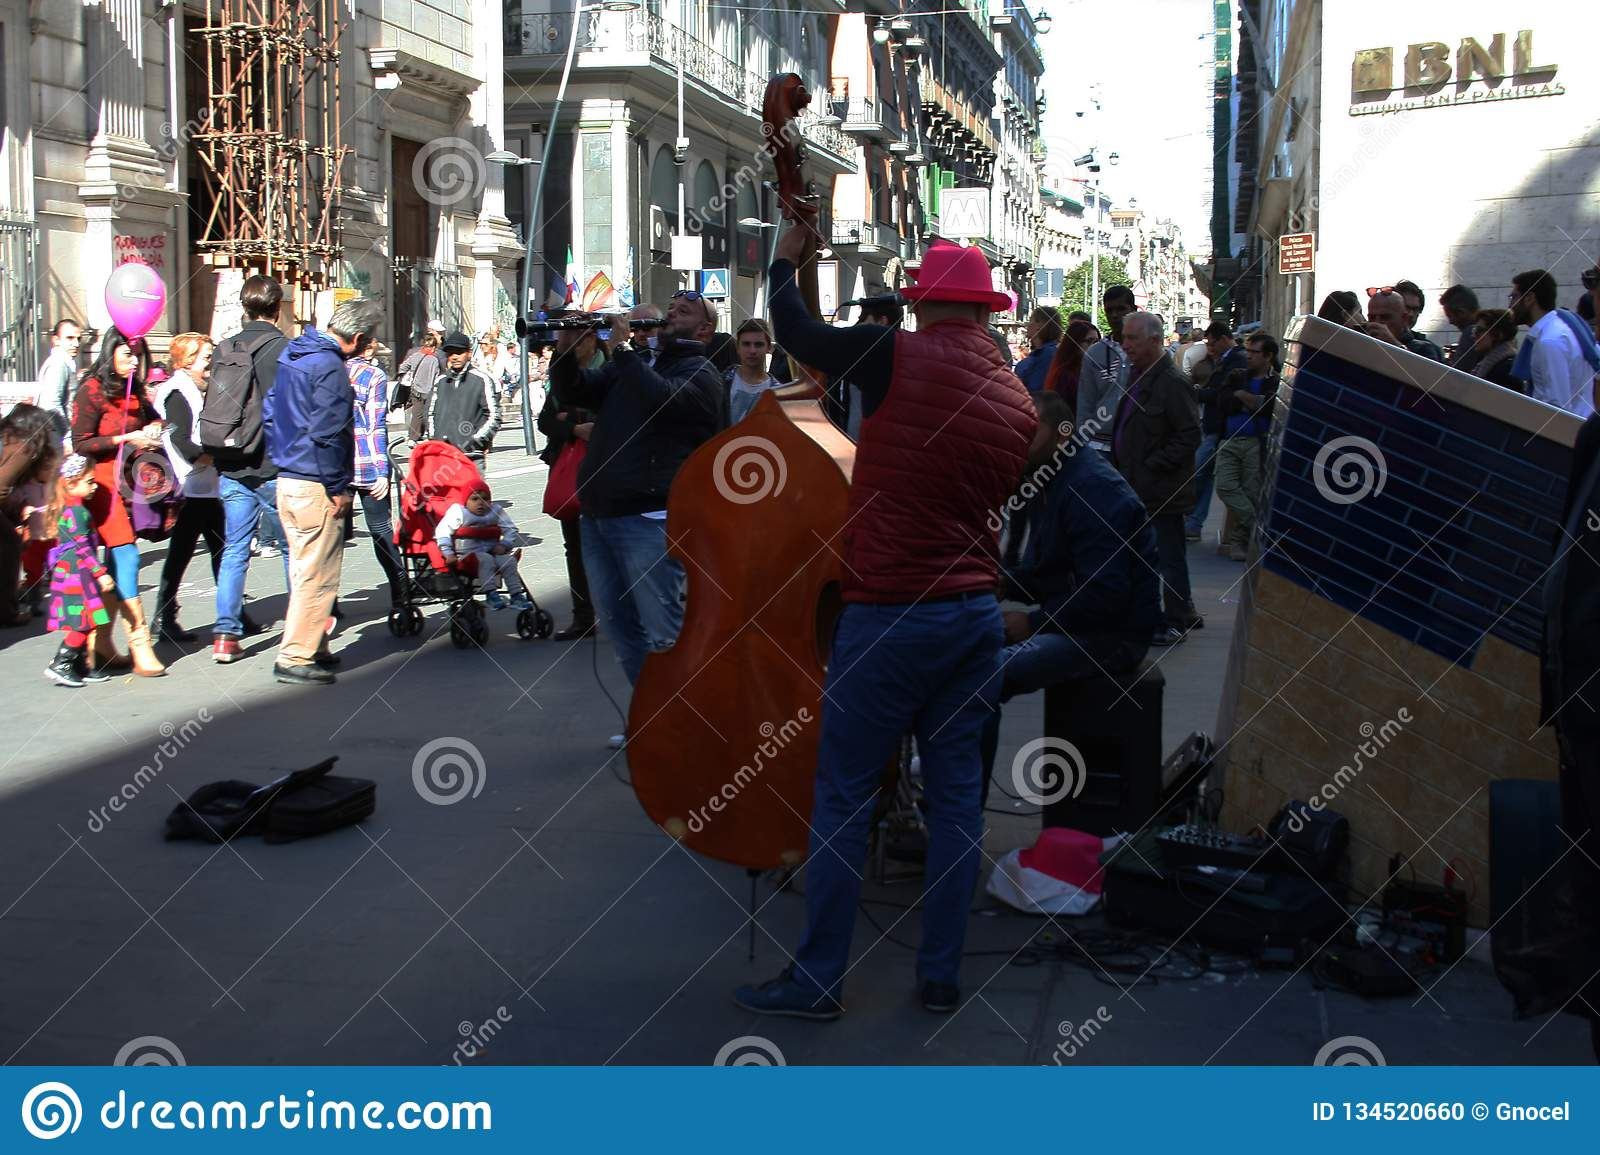 NAPLES, ITALY, October 2016 - Street musicians cheer up people with their music